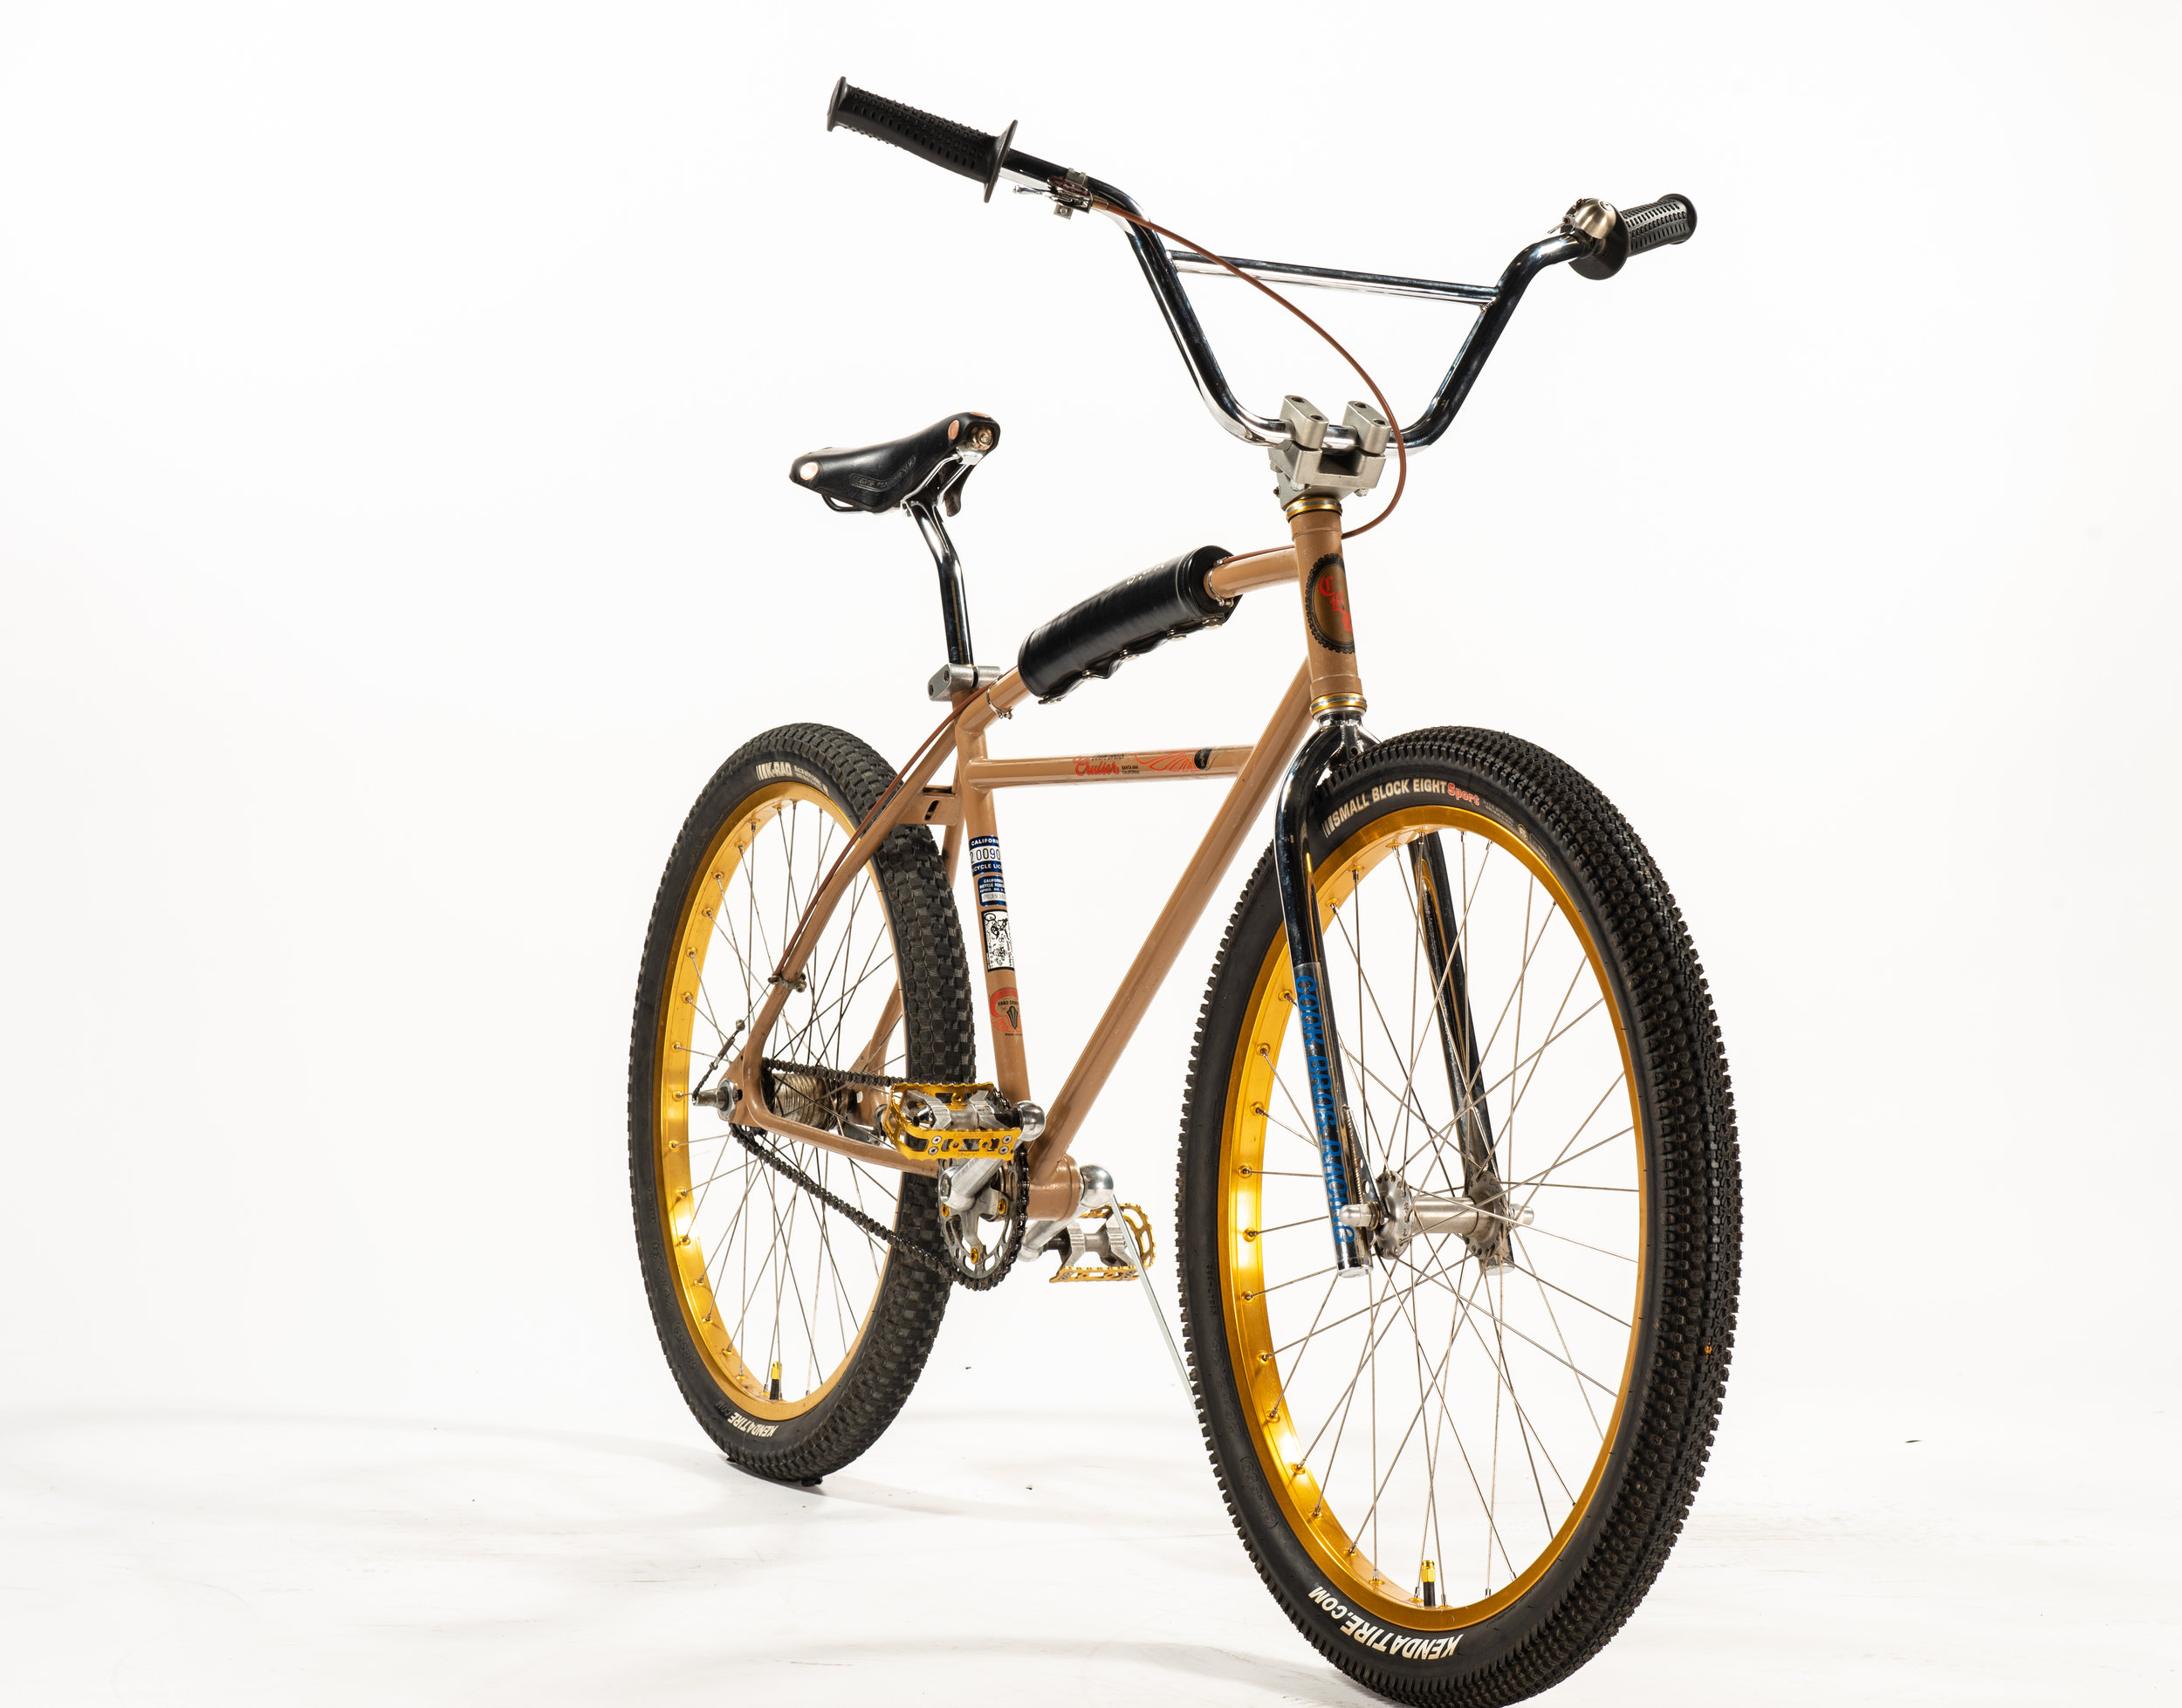 North American Handmade Bicycle Show  March 20 - 22 2020 Dallas, Texas